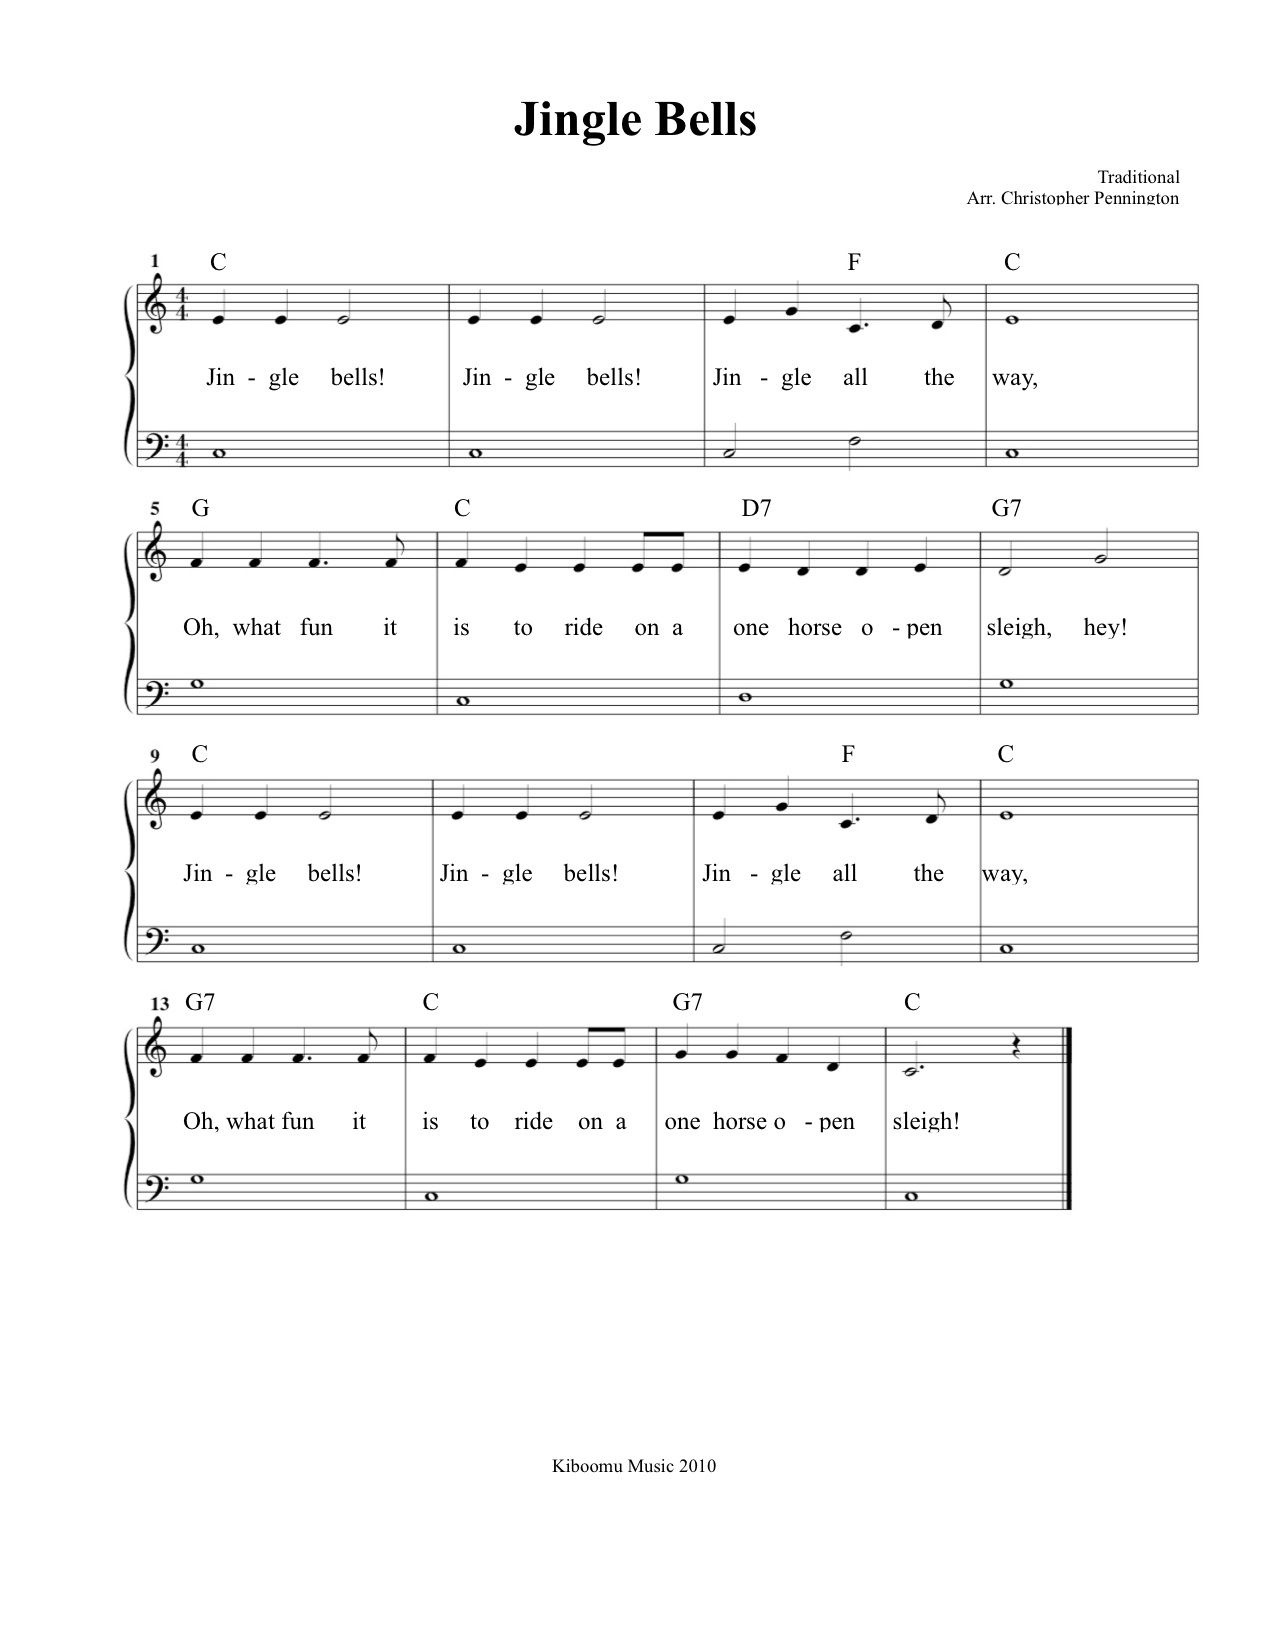 Free Printable Jingle Bells Sheet Music And Song For Kids! | Piano - Free Christmas Piano Sheet Music For Beginners Printable